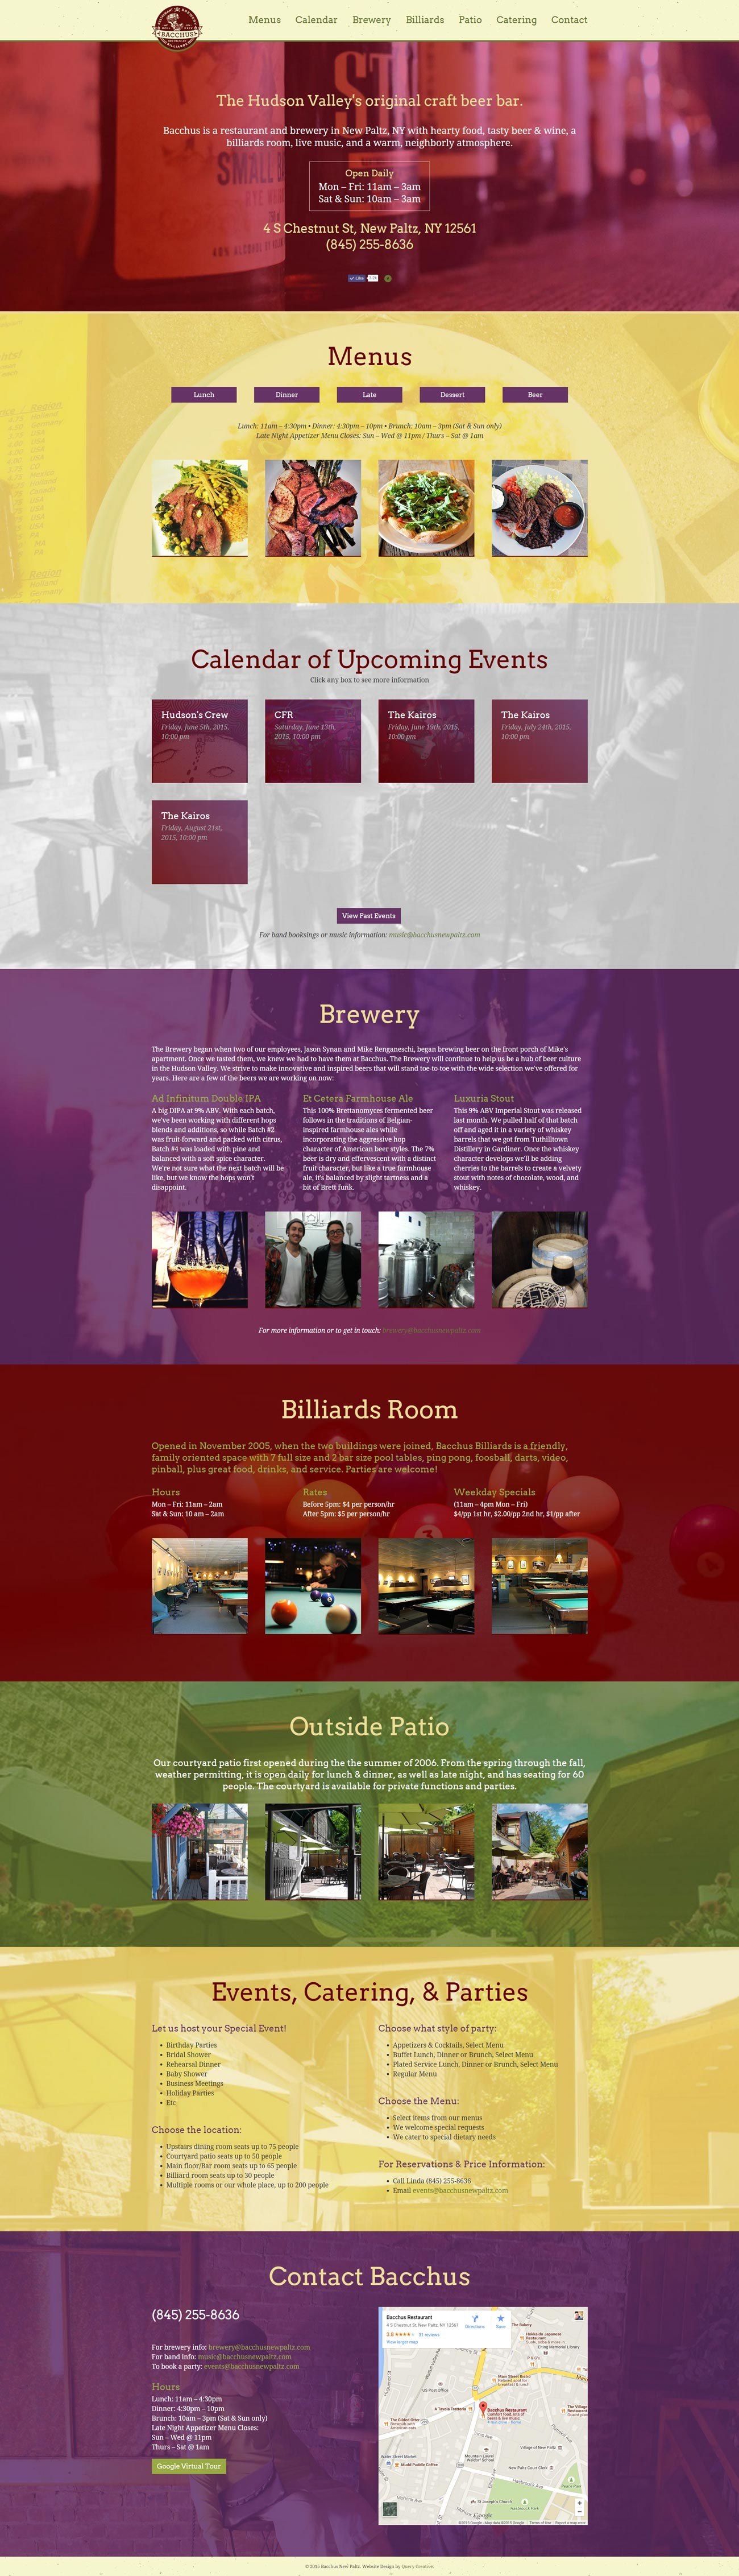 Bacchus Website Full, designed by Query Creative in the Hudson Valley